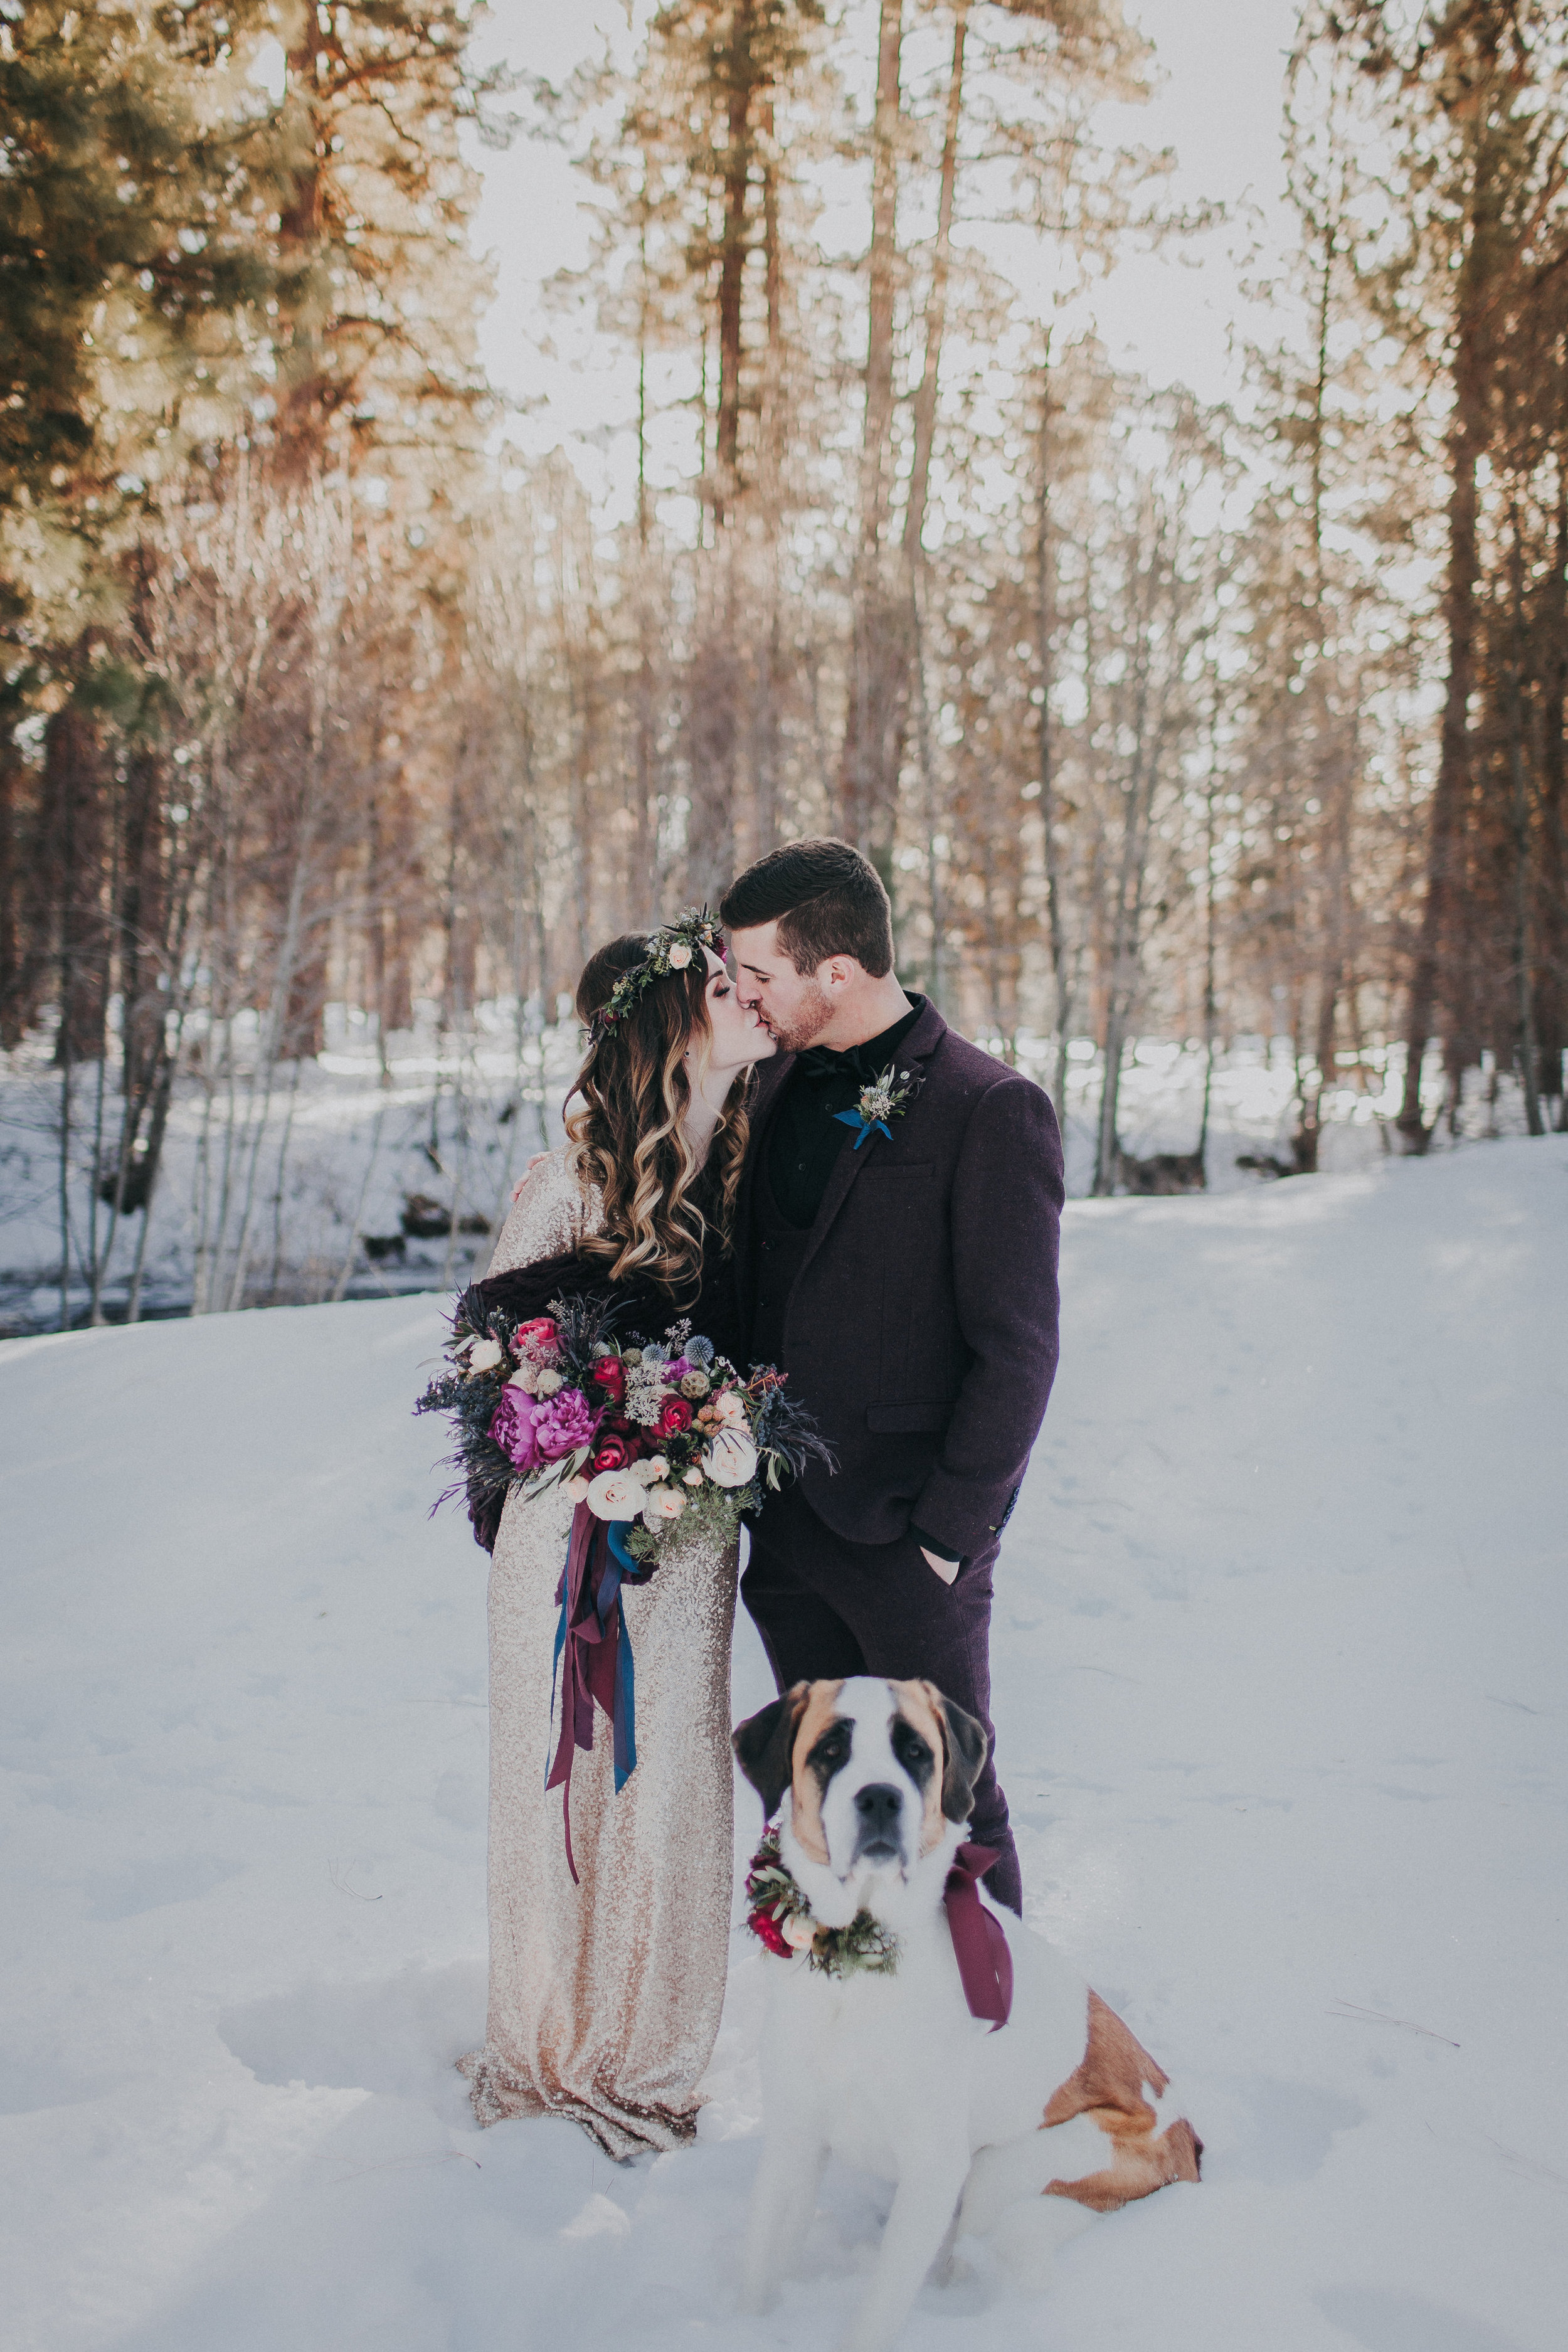 Bend Central Oregon Destination Wedding Planner Designer Brilliant Wedding Co.